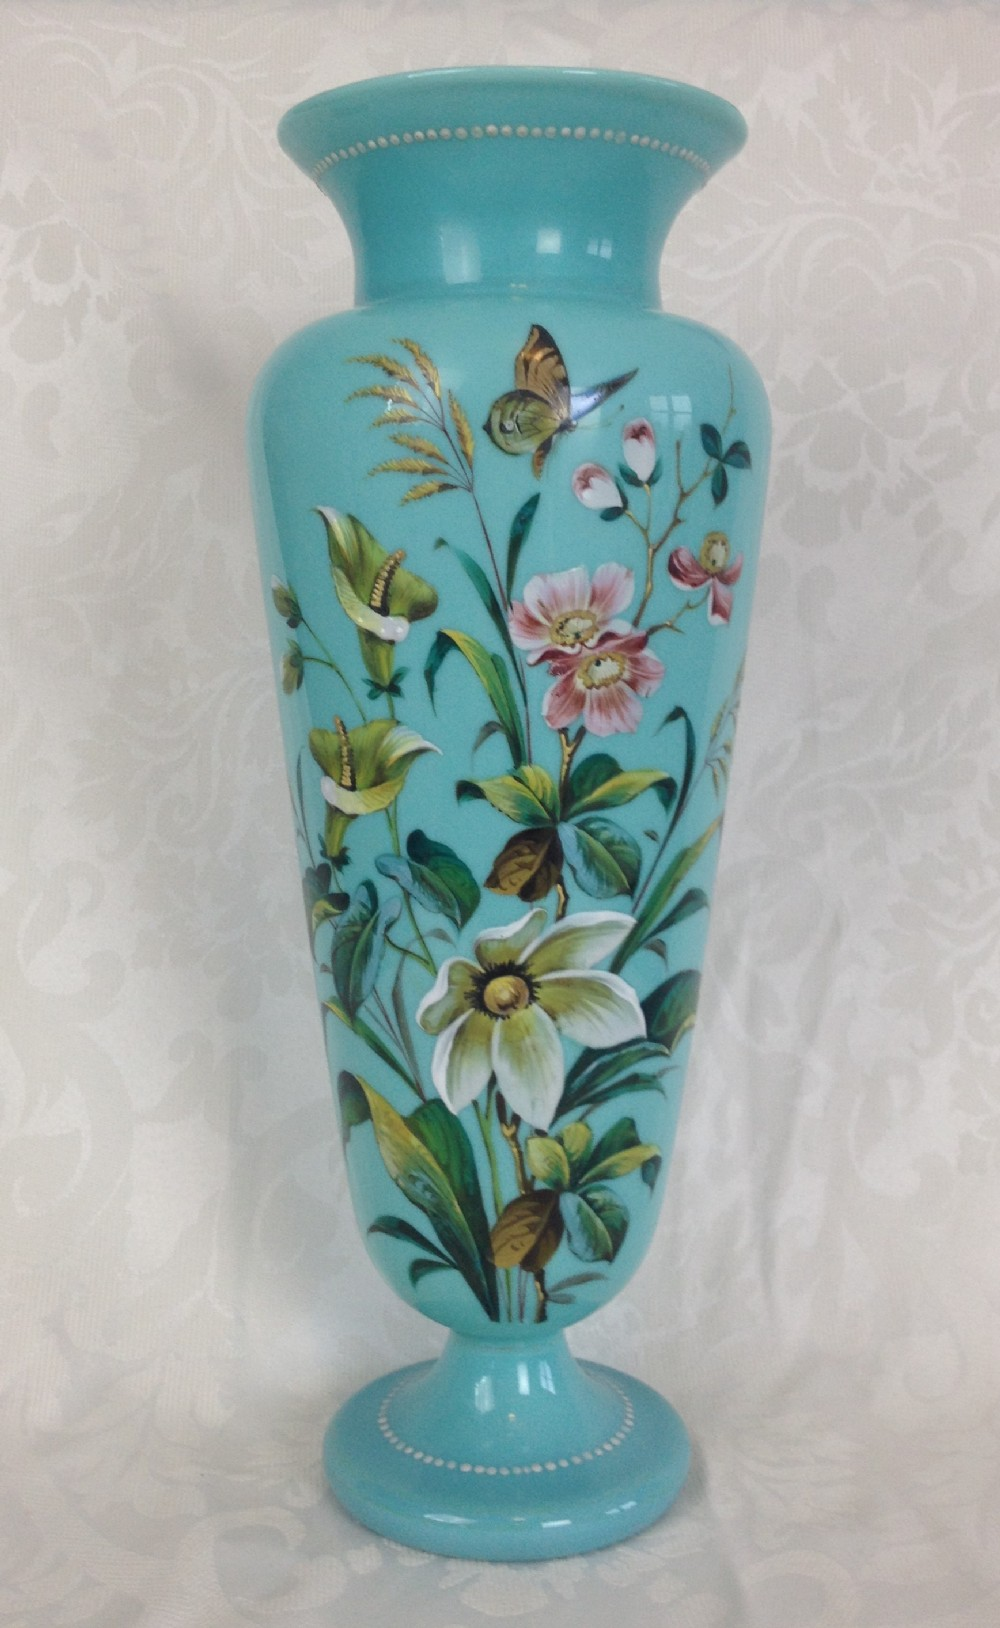 Stunning Large 15 Quot C19th Bohemian Turquoise Opaline Glass Vase Possibly Harrach Enamels Flowers